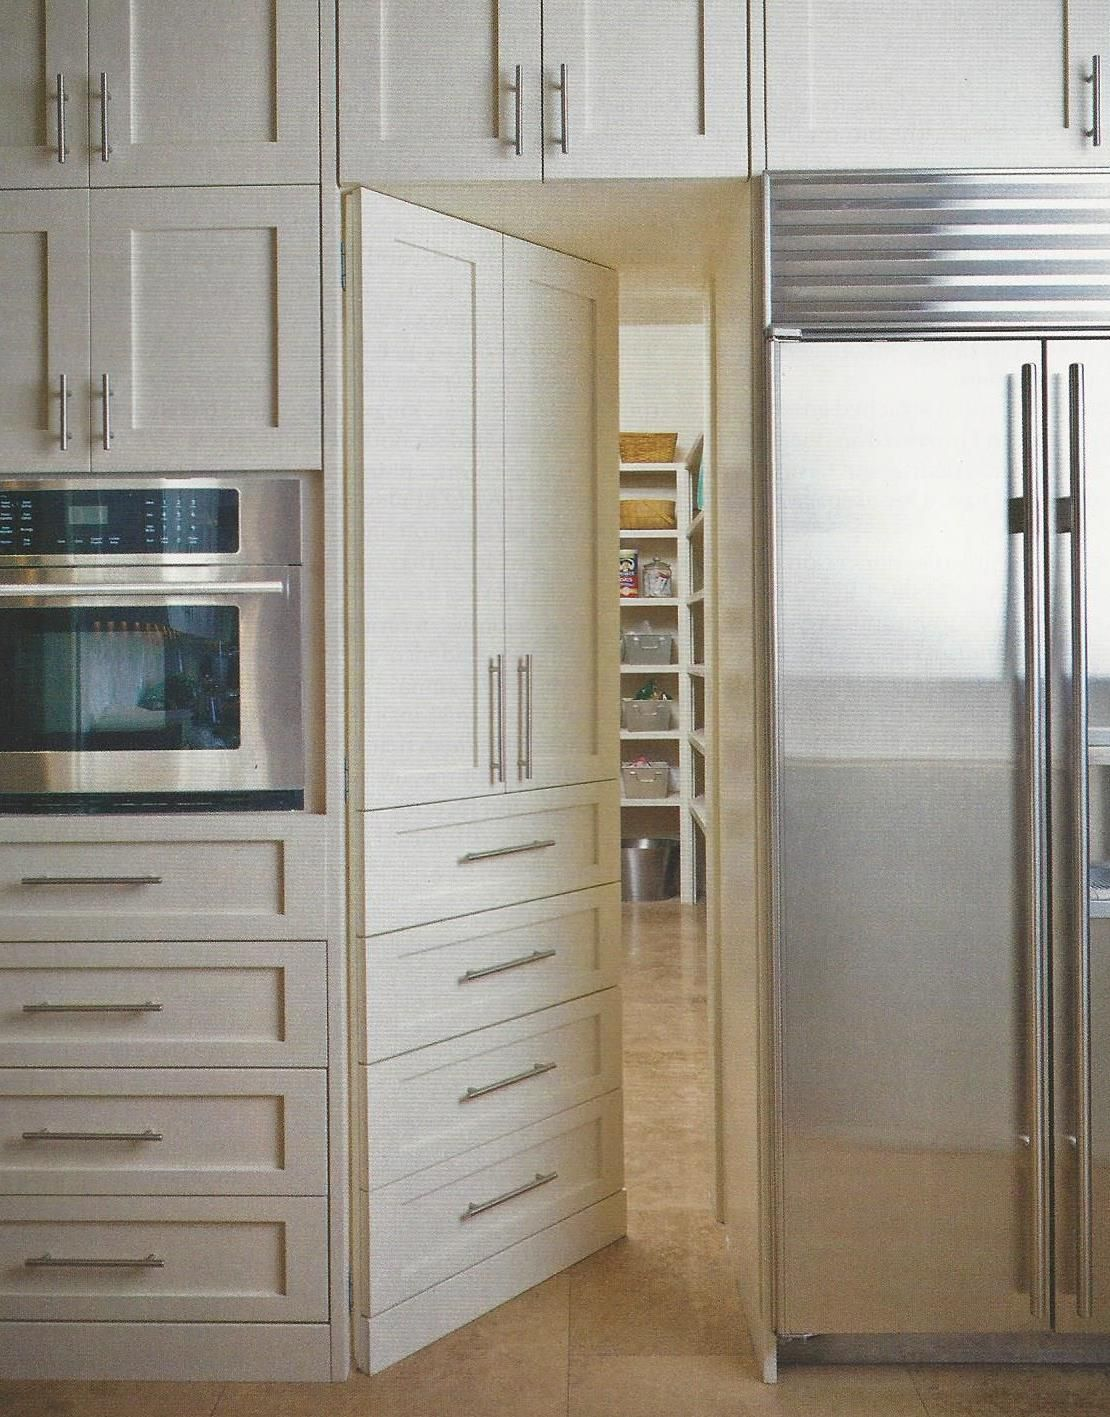 be pantry replacing fold decorative bi any glass doors can door old